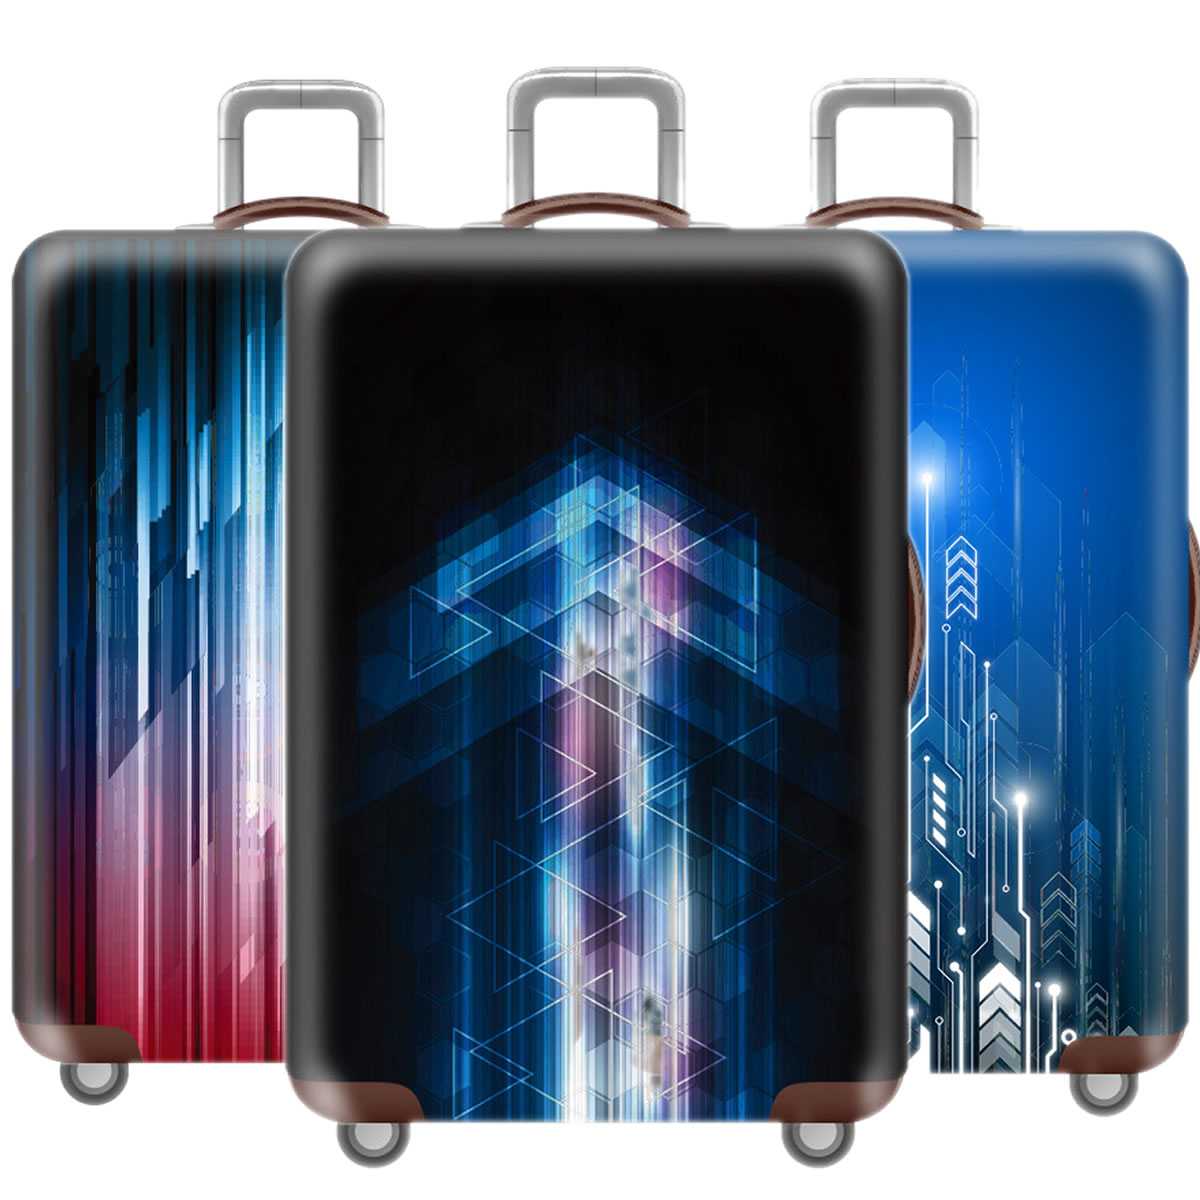 Fashion 3D Cool Luggage Cover Protective Case Thicken Waterproof Elastic Blue Suitcase Cover For 18-32 Inch XL Travel Accessorie